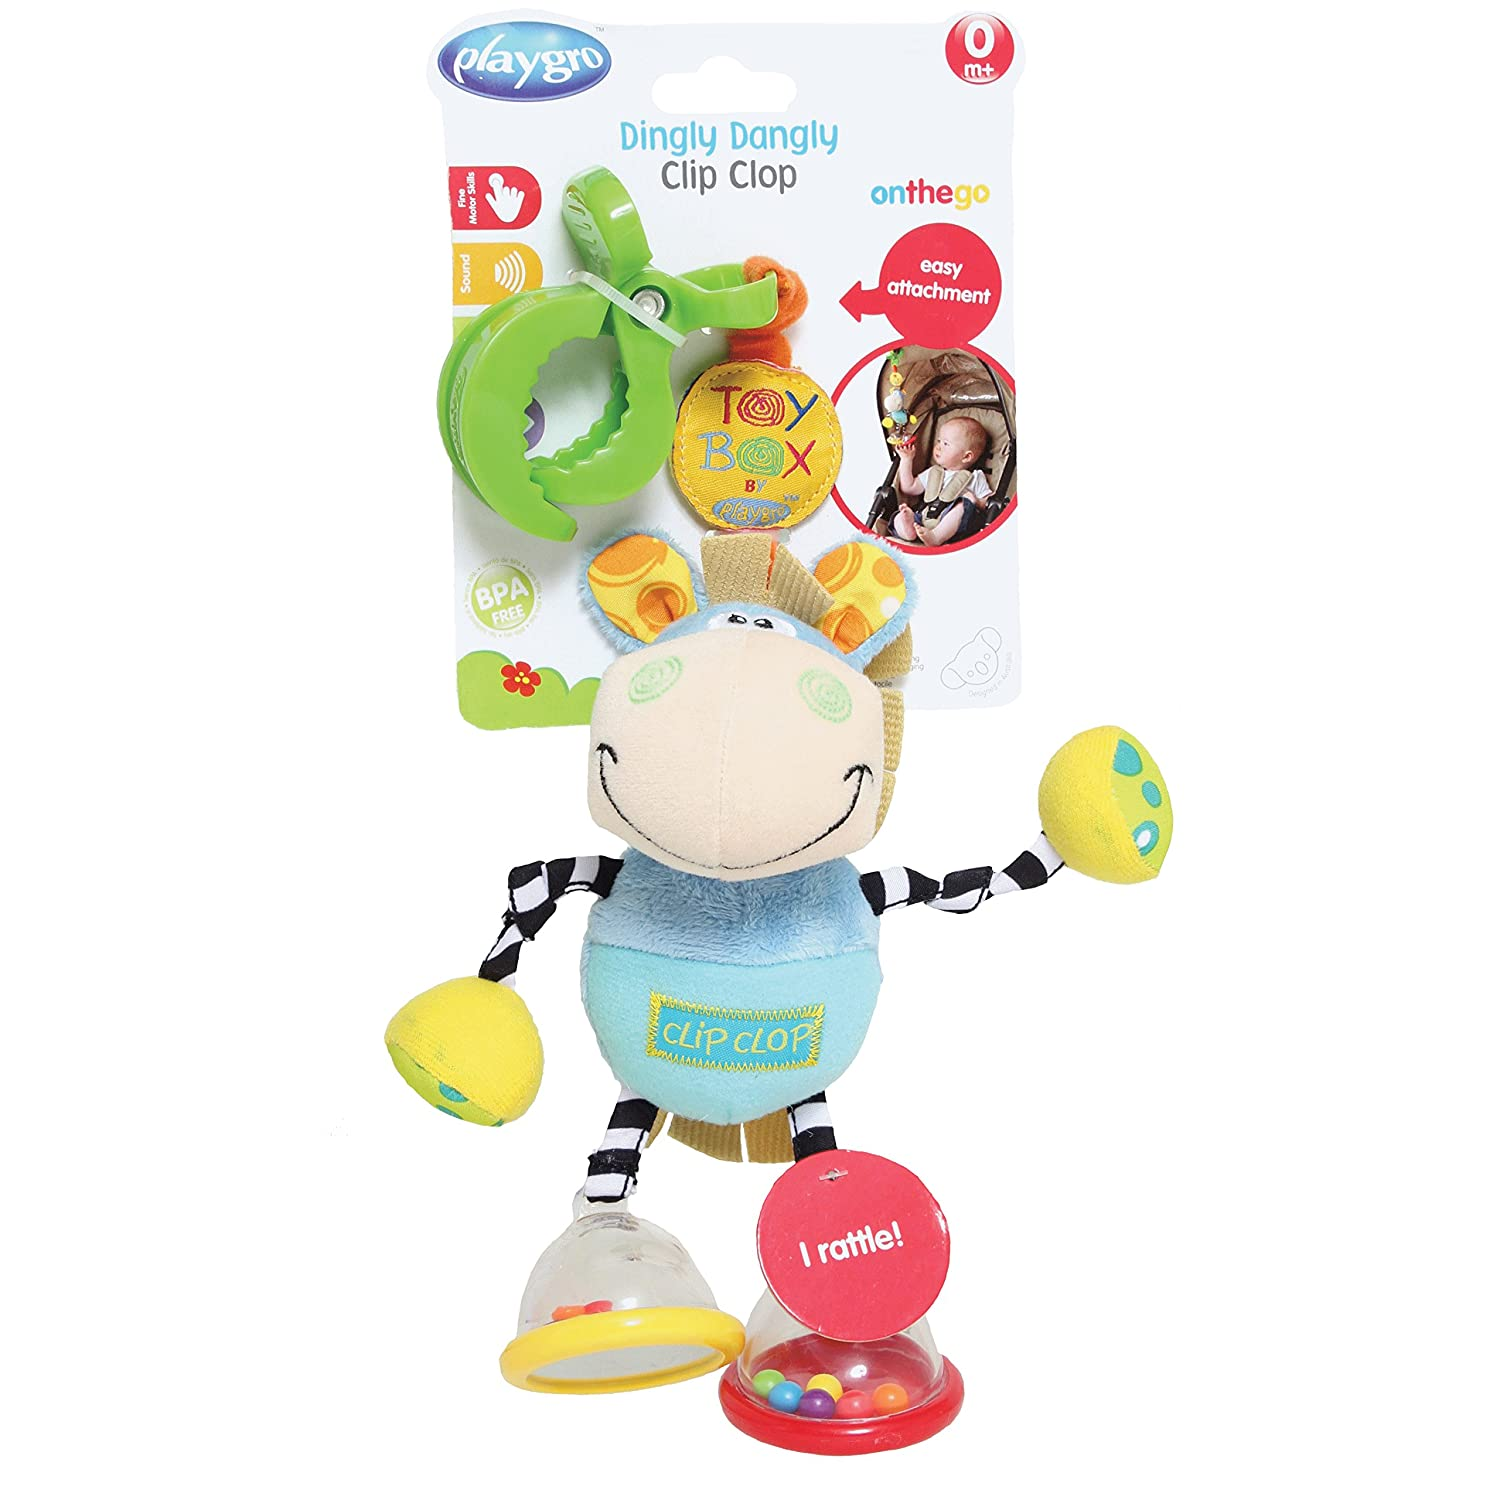 Ebebek gear travel high chair portable high chair 0 review - Amazon Com Playgro 0101140 Dingly Dangly Clip Clop Baby Toy Baby Stroller Toys Baby